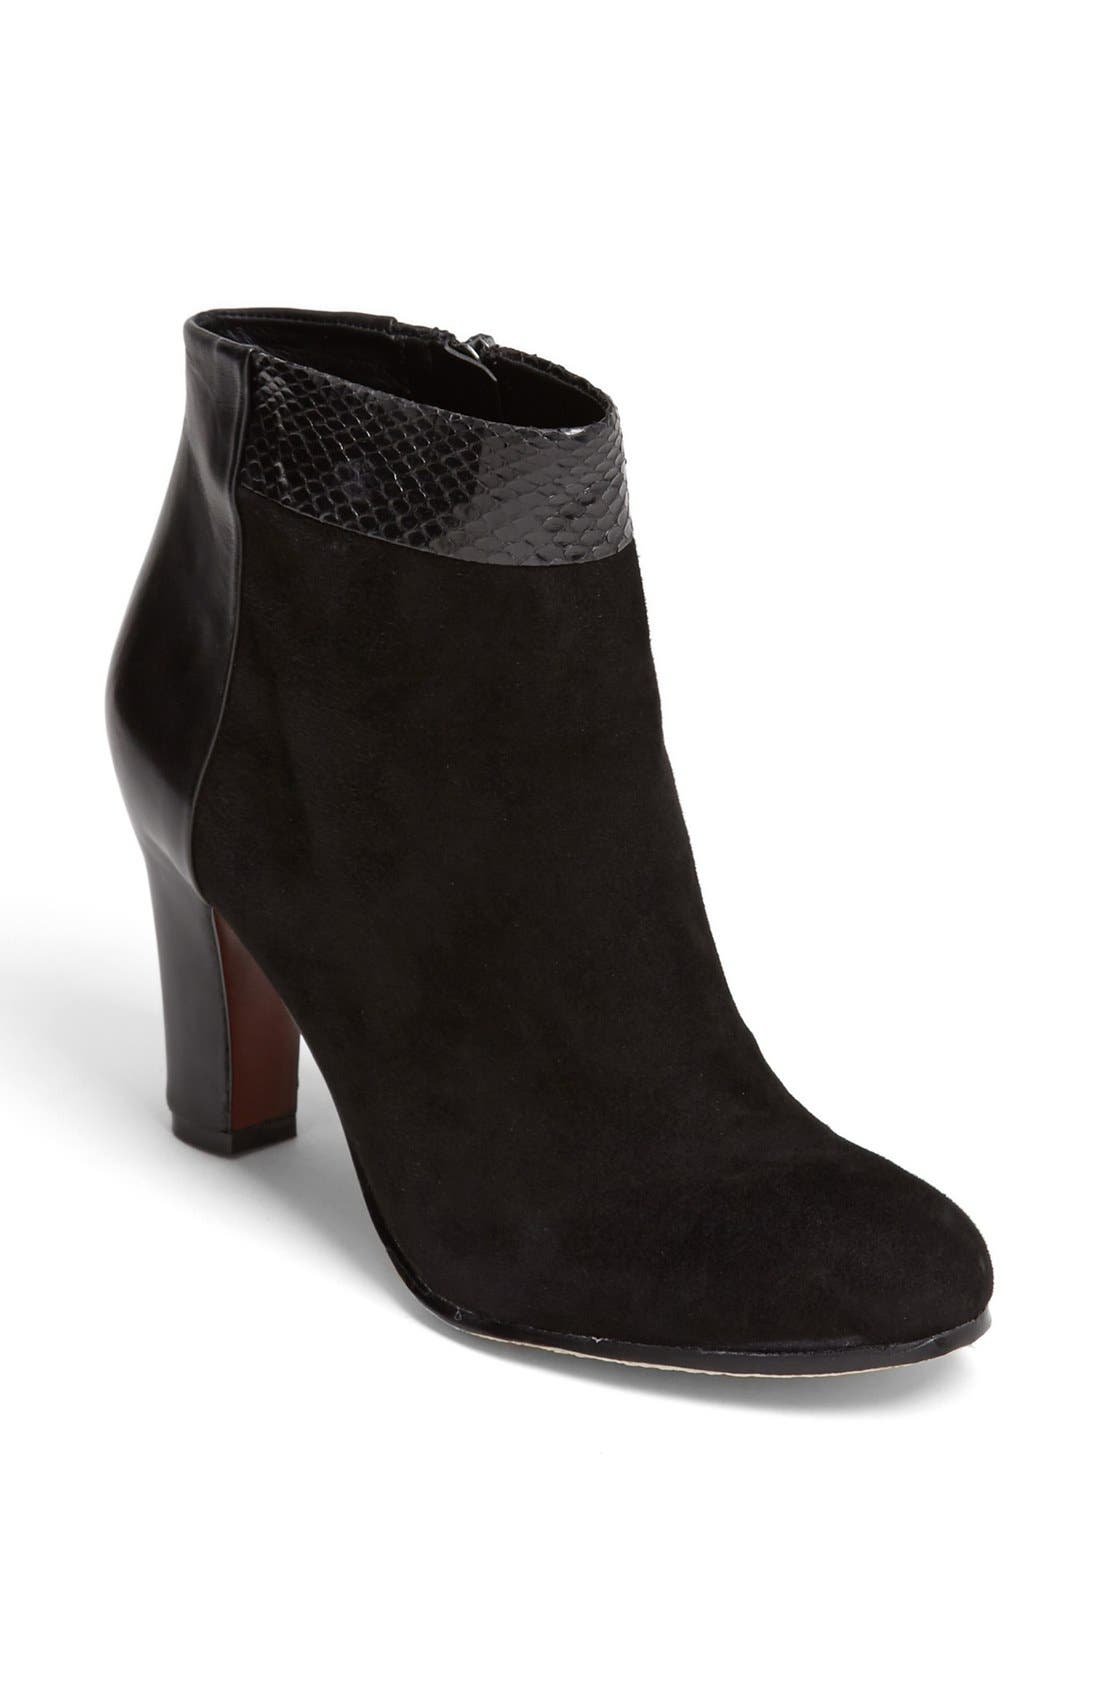 Alternate Image 1 Selected - Sam Edelman 'Shay' Bootie